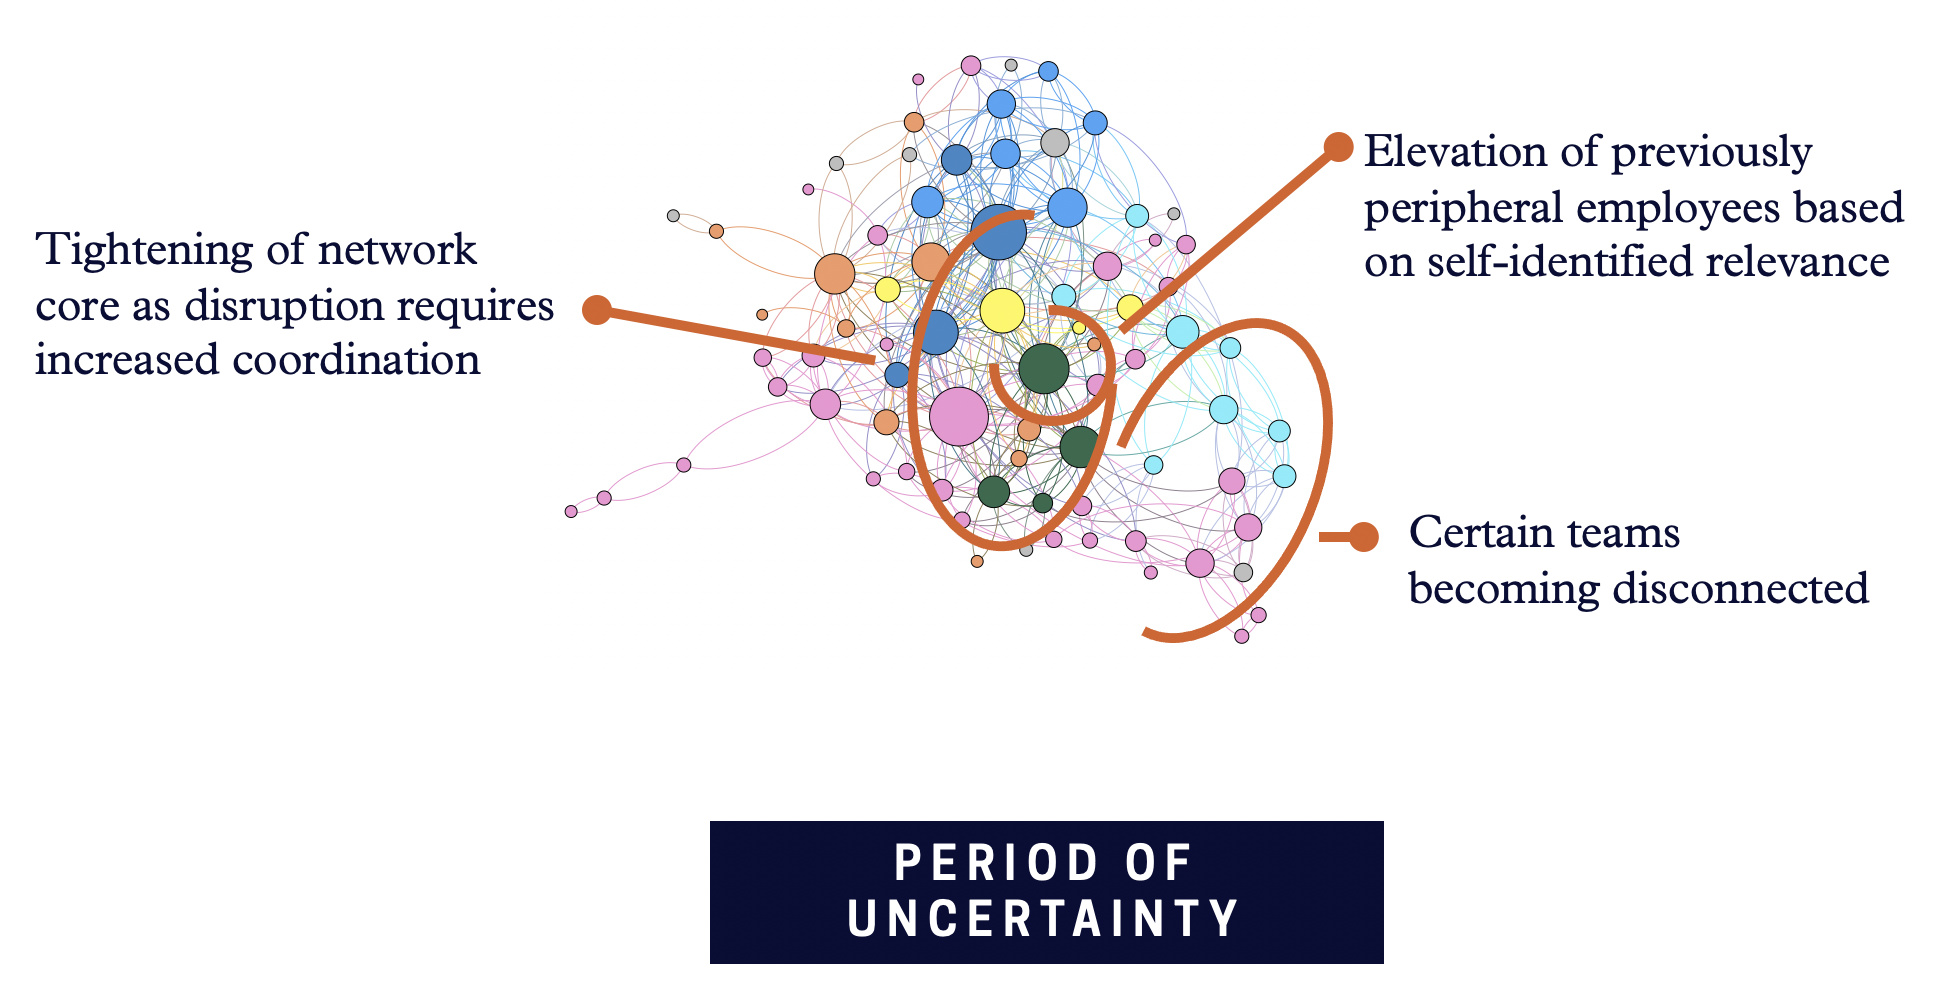 period-of-uncertainty.png